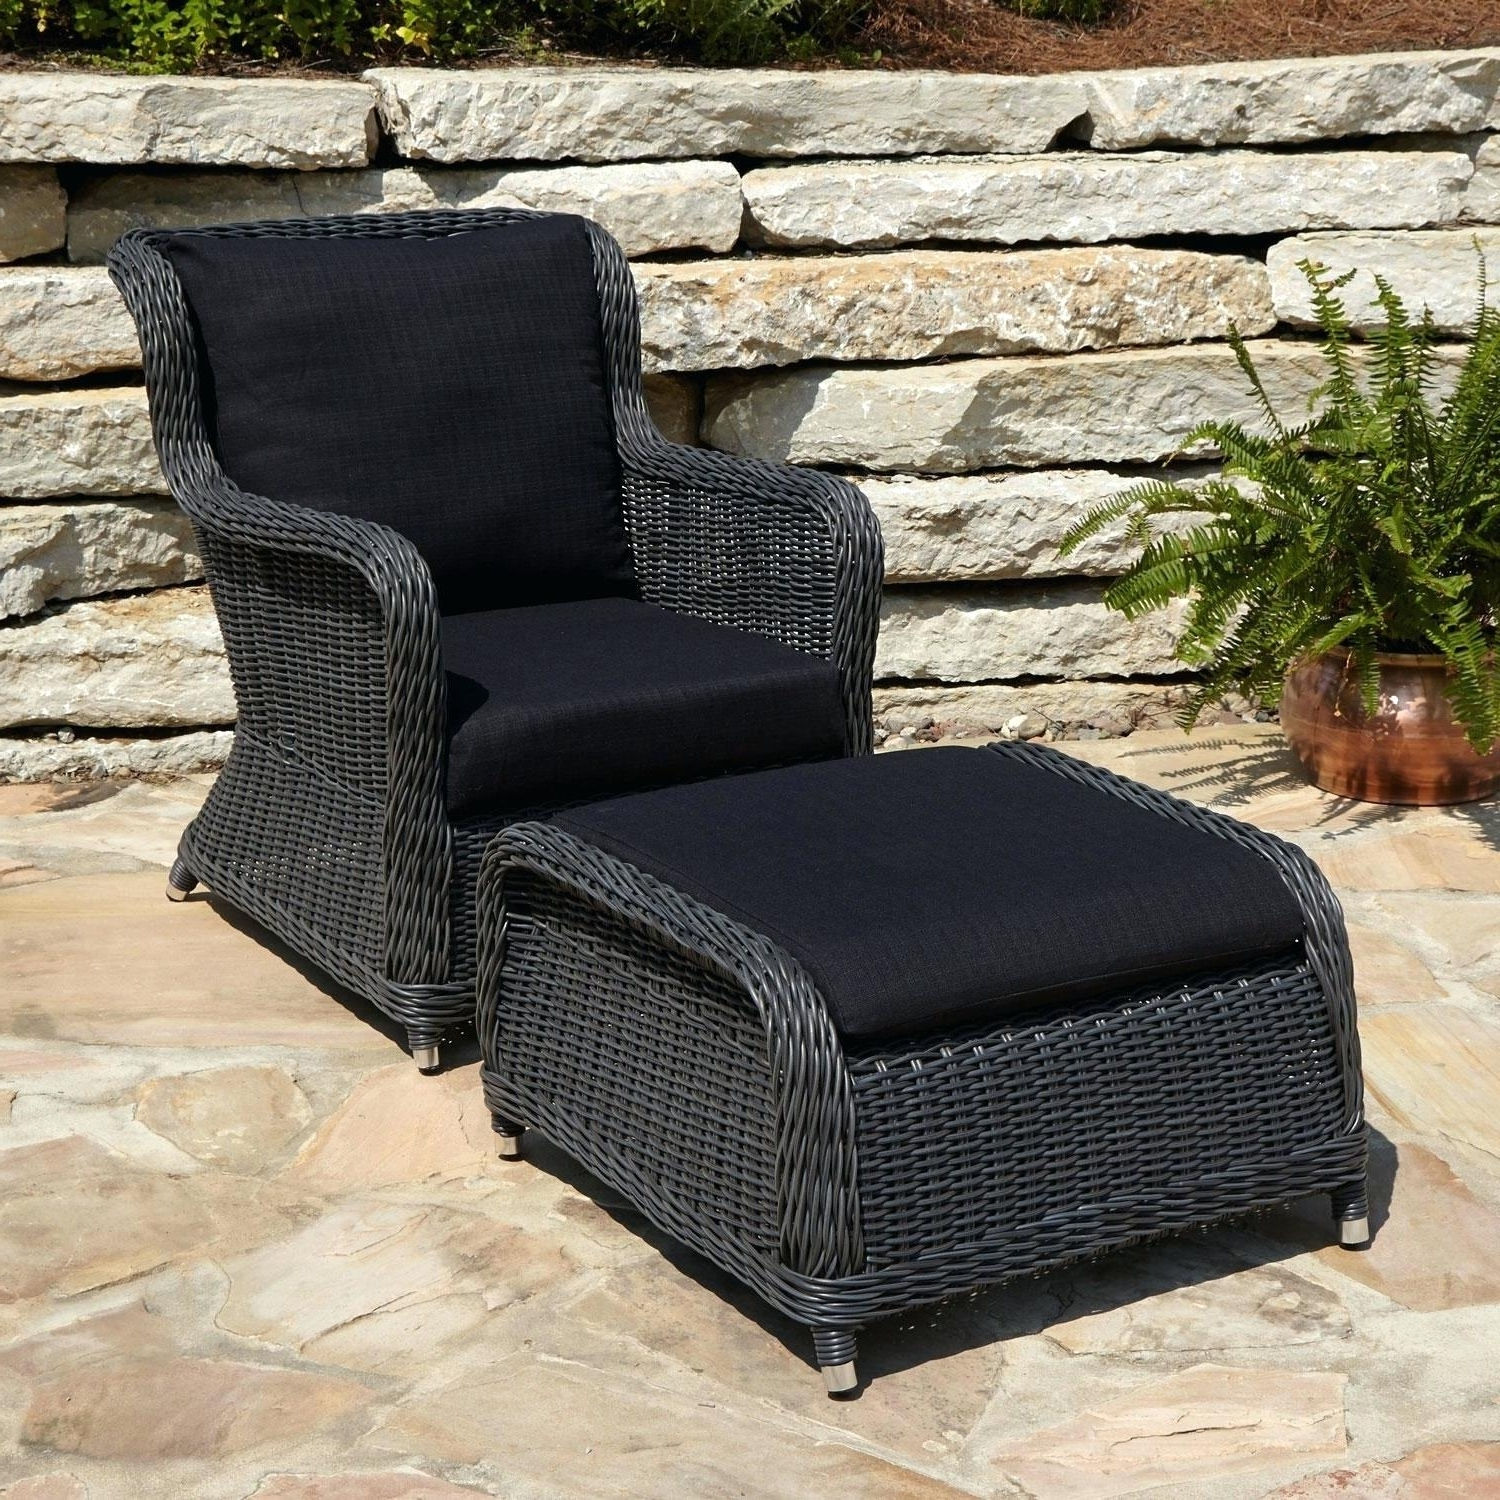 Resin Patio Furniture Sets Chair Pier One Wicker Conversation Blue For Widely Used Pier One Patio Conversation Sets (View 17 of 20)